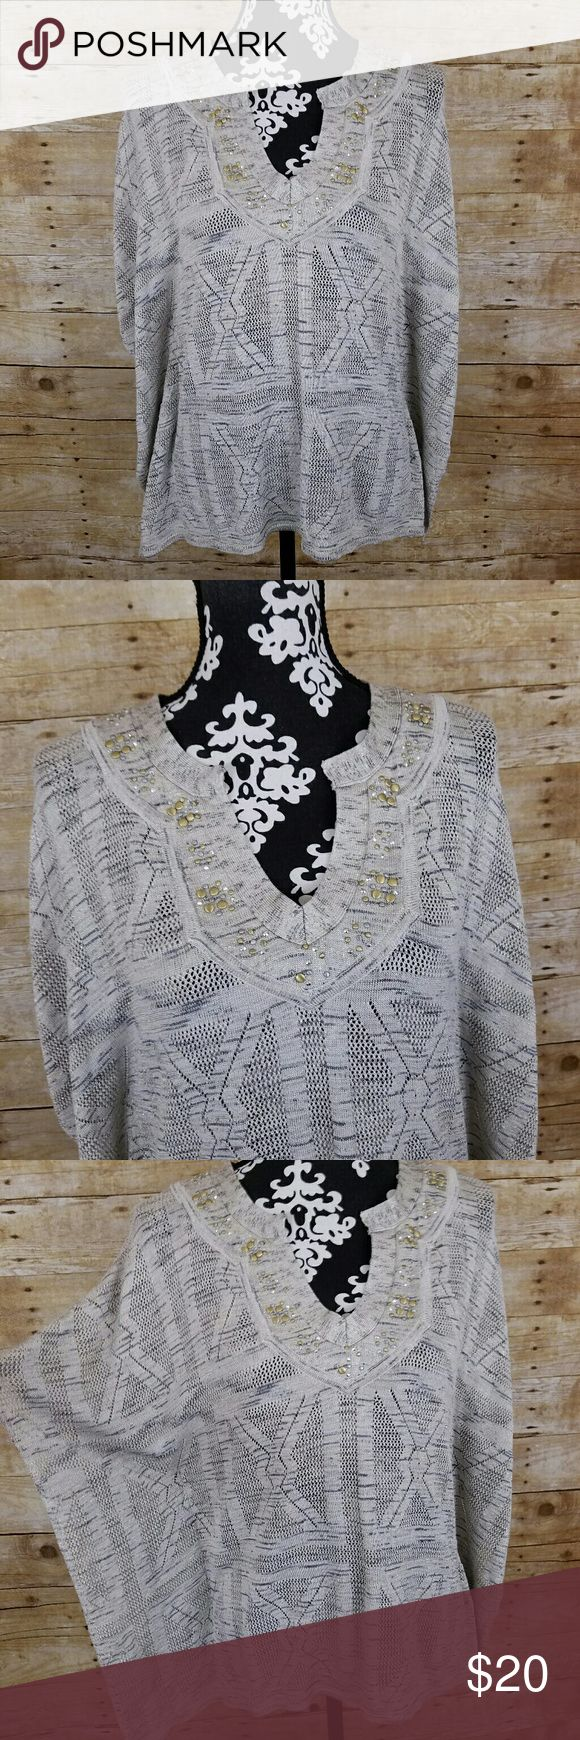 "White House Black Market Embellished Batwing Top Women's White House Black Market Embellished Batwing Top  83% rayon, 11% polyester, 6% metallic  Size XS  Gently used EUC   Measurements laying flat:  Underarm to underarm: 17""  Length: 26.5"" White House Black Market Tops"